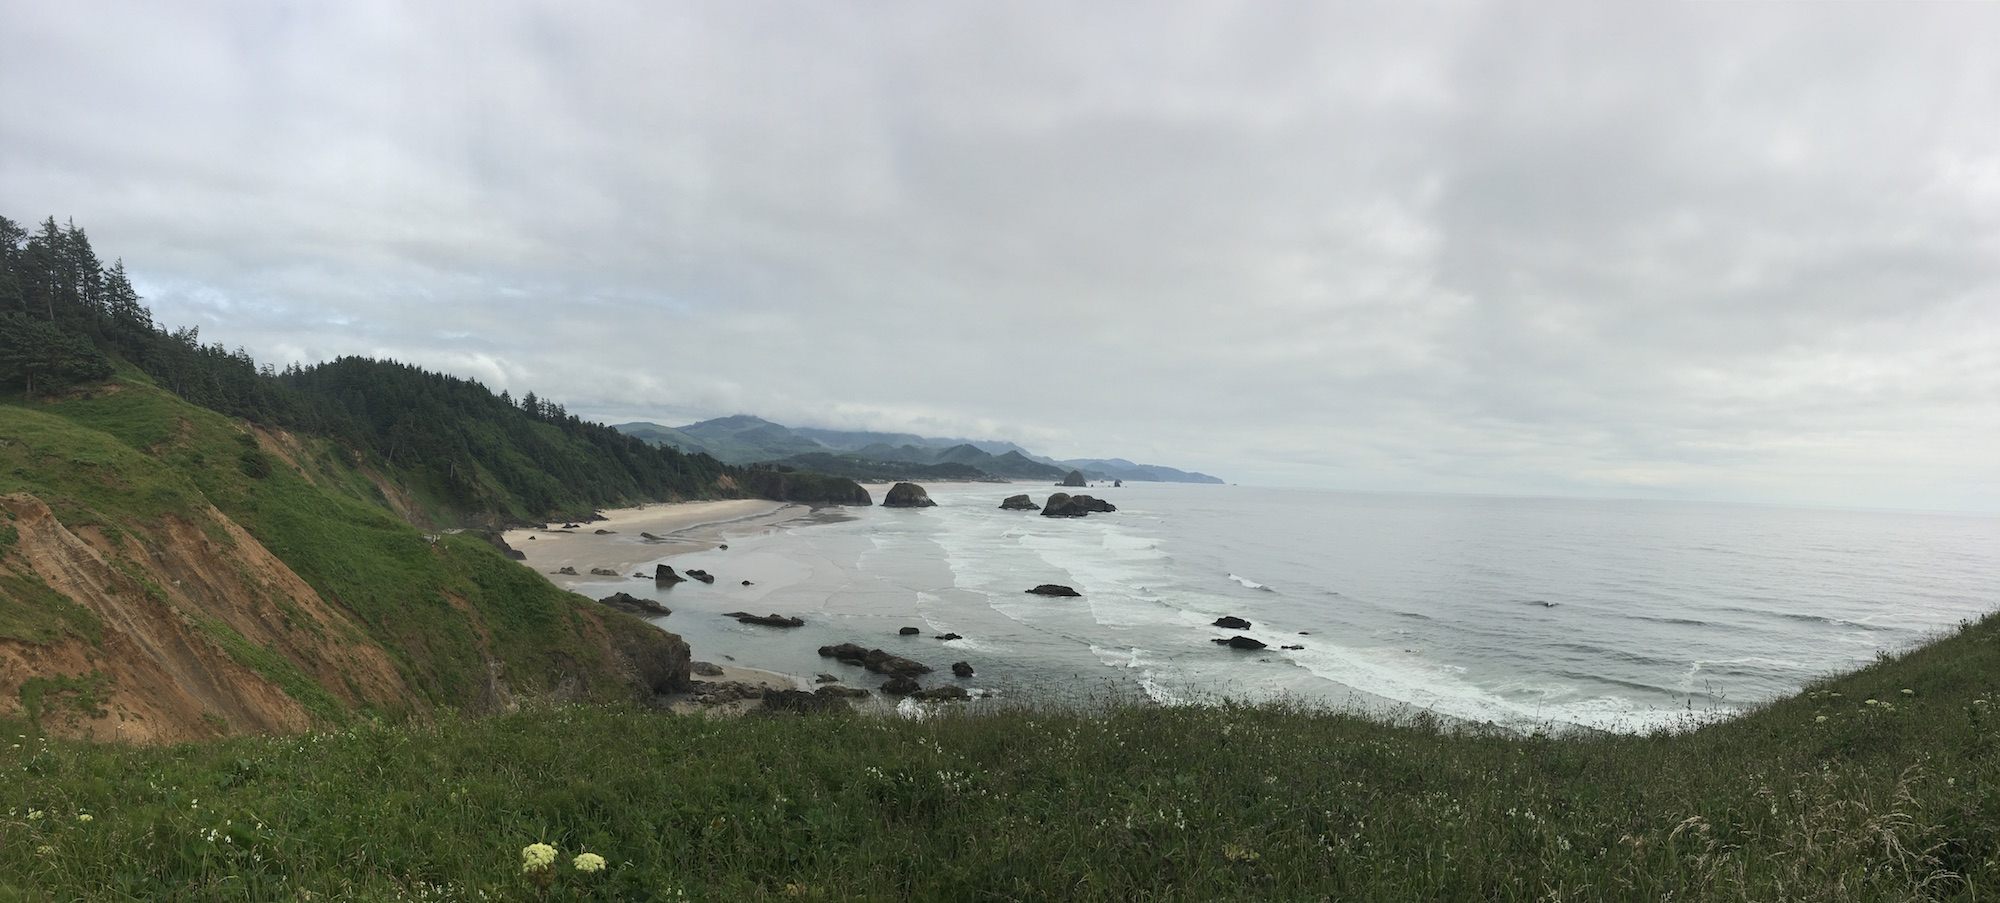 Cannon Beach, taken from Ecola State Park, OR